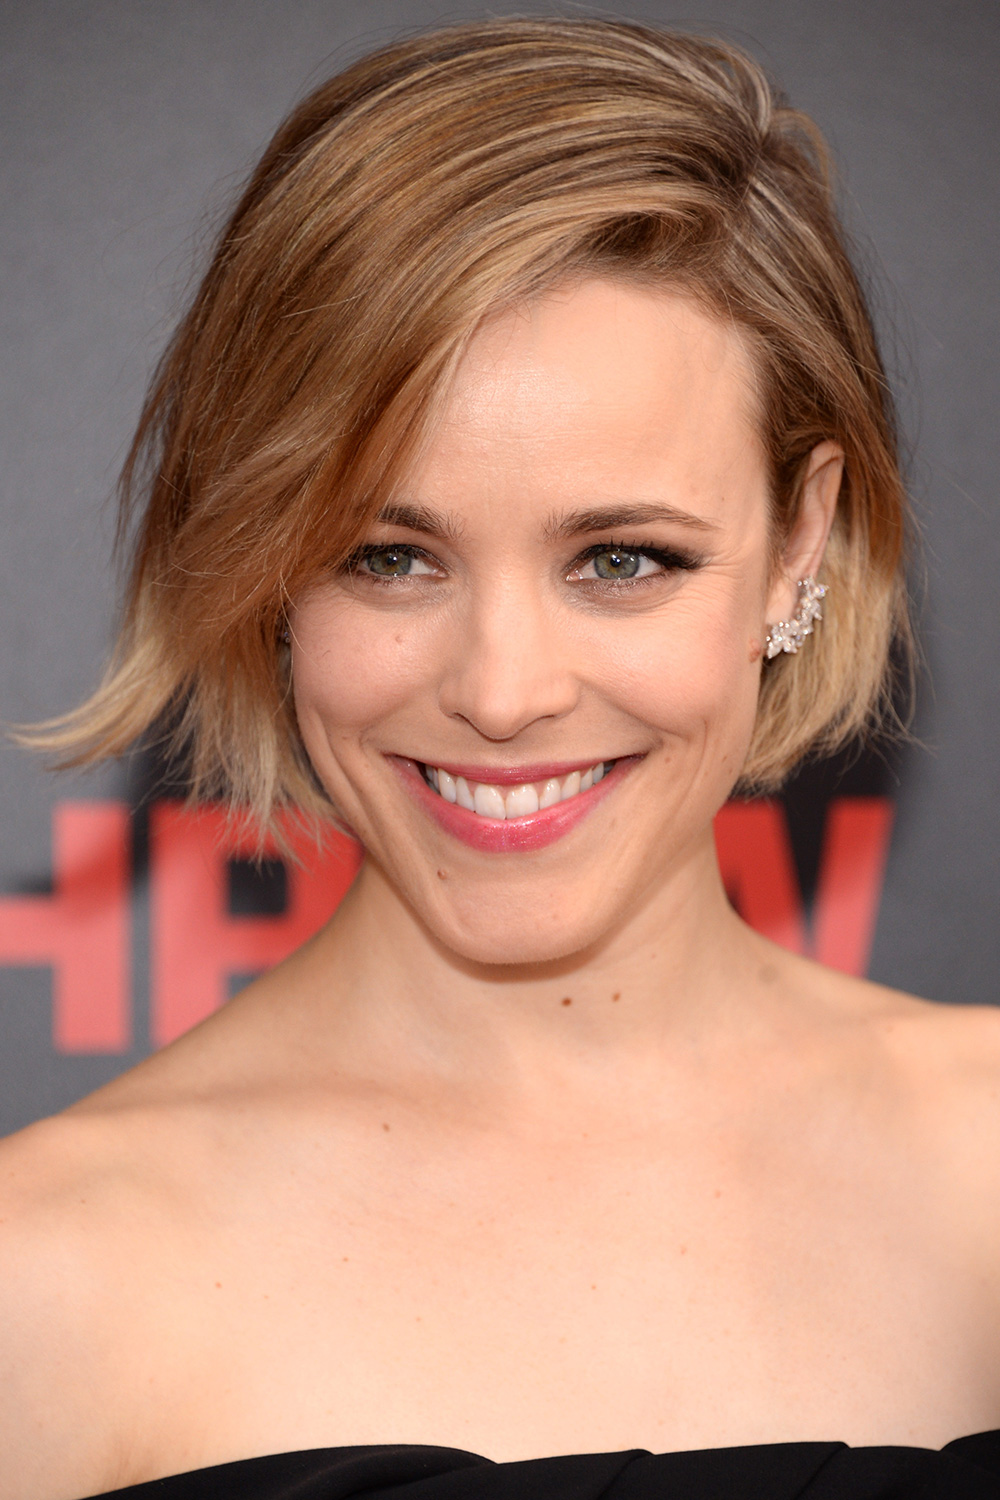 July: Rachel McAdams Several celebrities went for the chop this year and Rachel McAdams showcased her shiny, smooth bob at the ESPY Awards. Getty Images